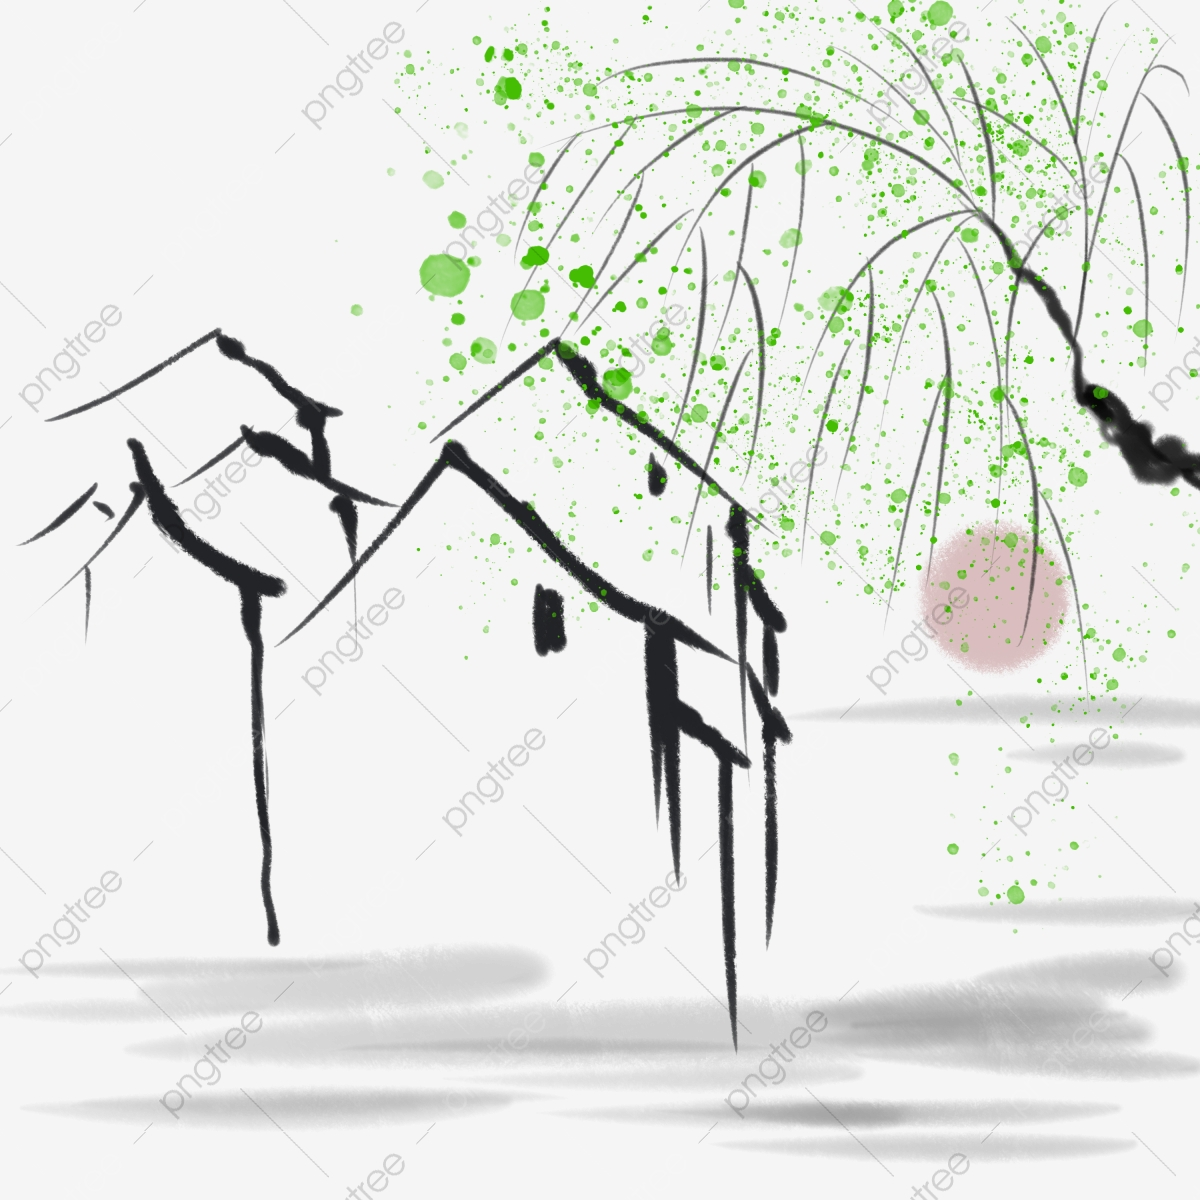 Chinese Style Ink Willow Tree Family Ink National Style Willow Png Transparent Clipart Image And Psd File For Free Download